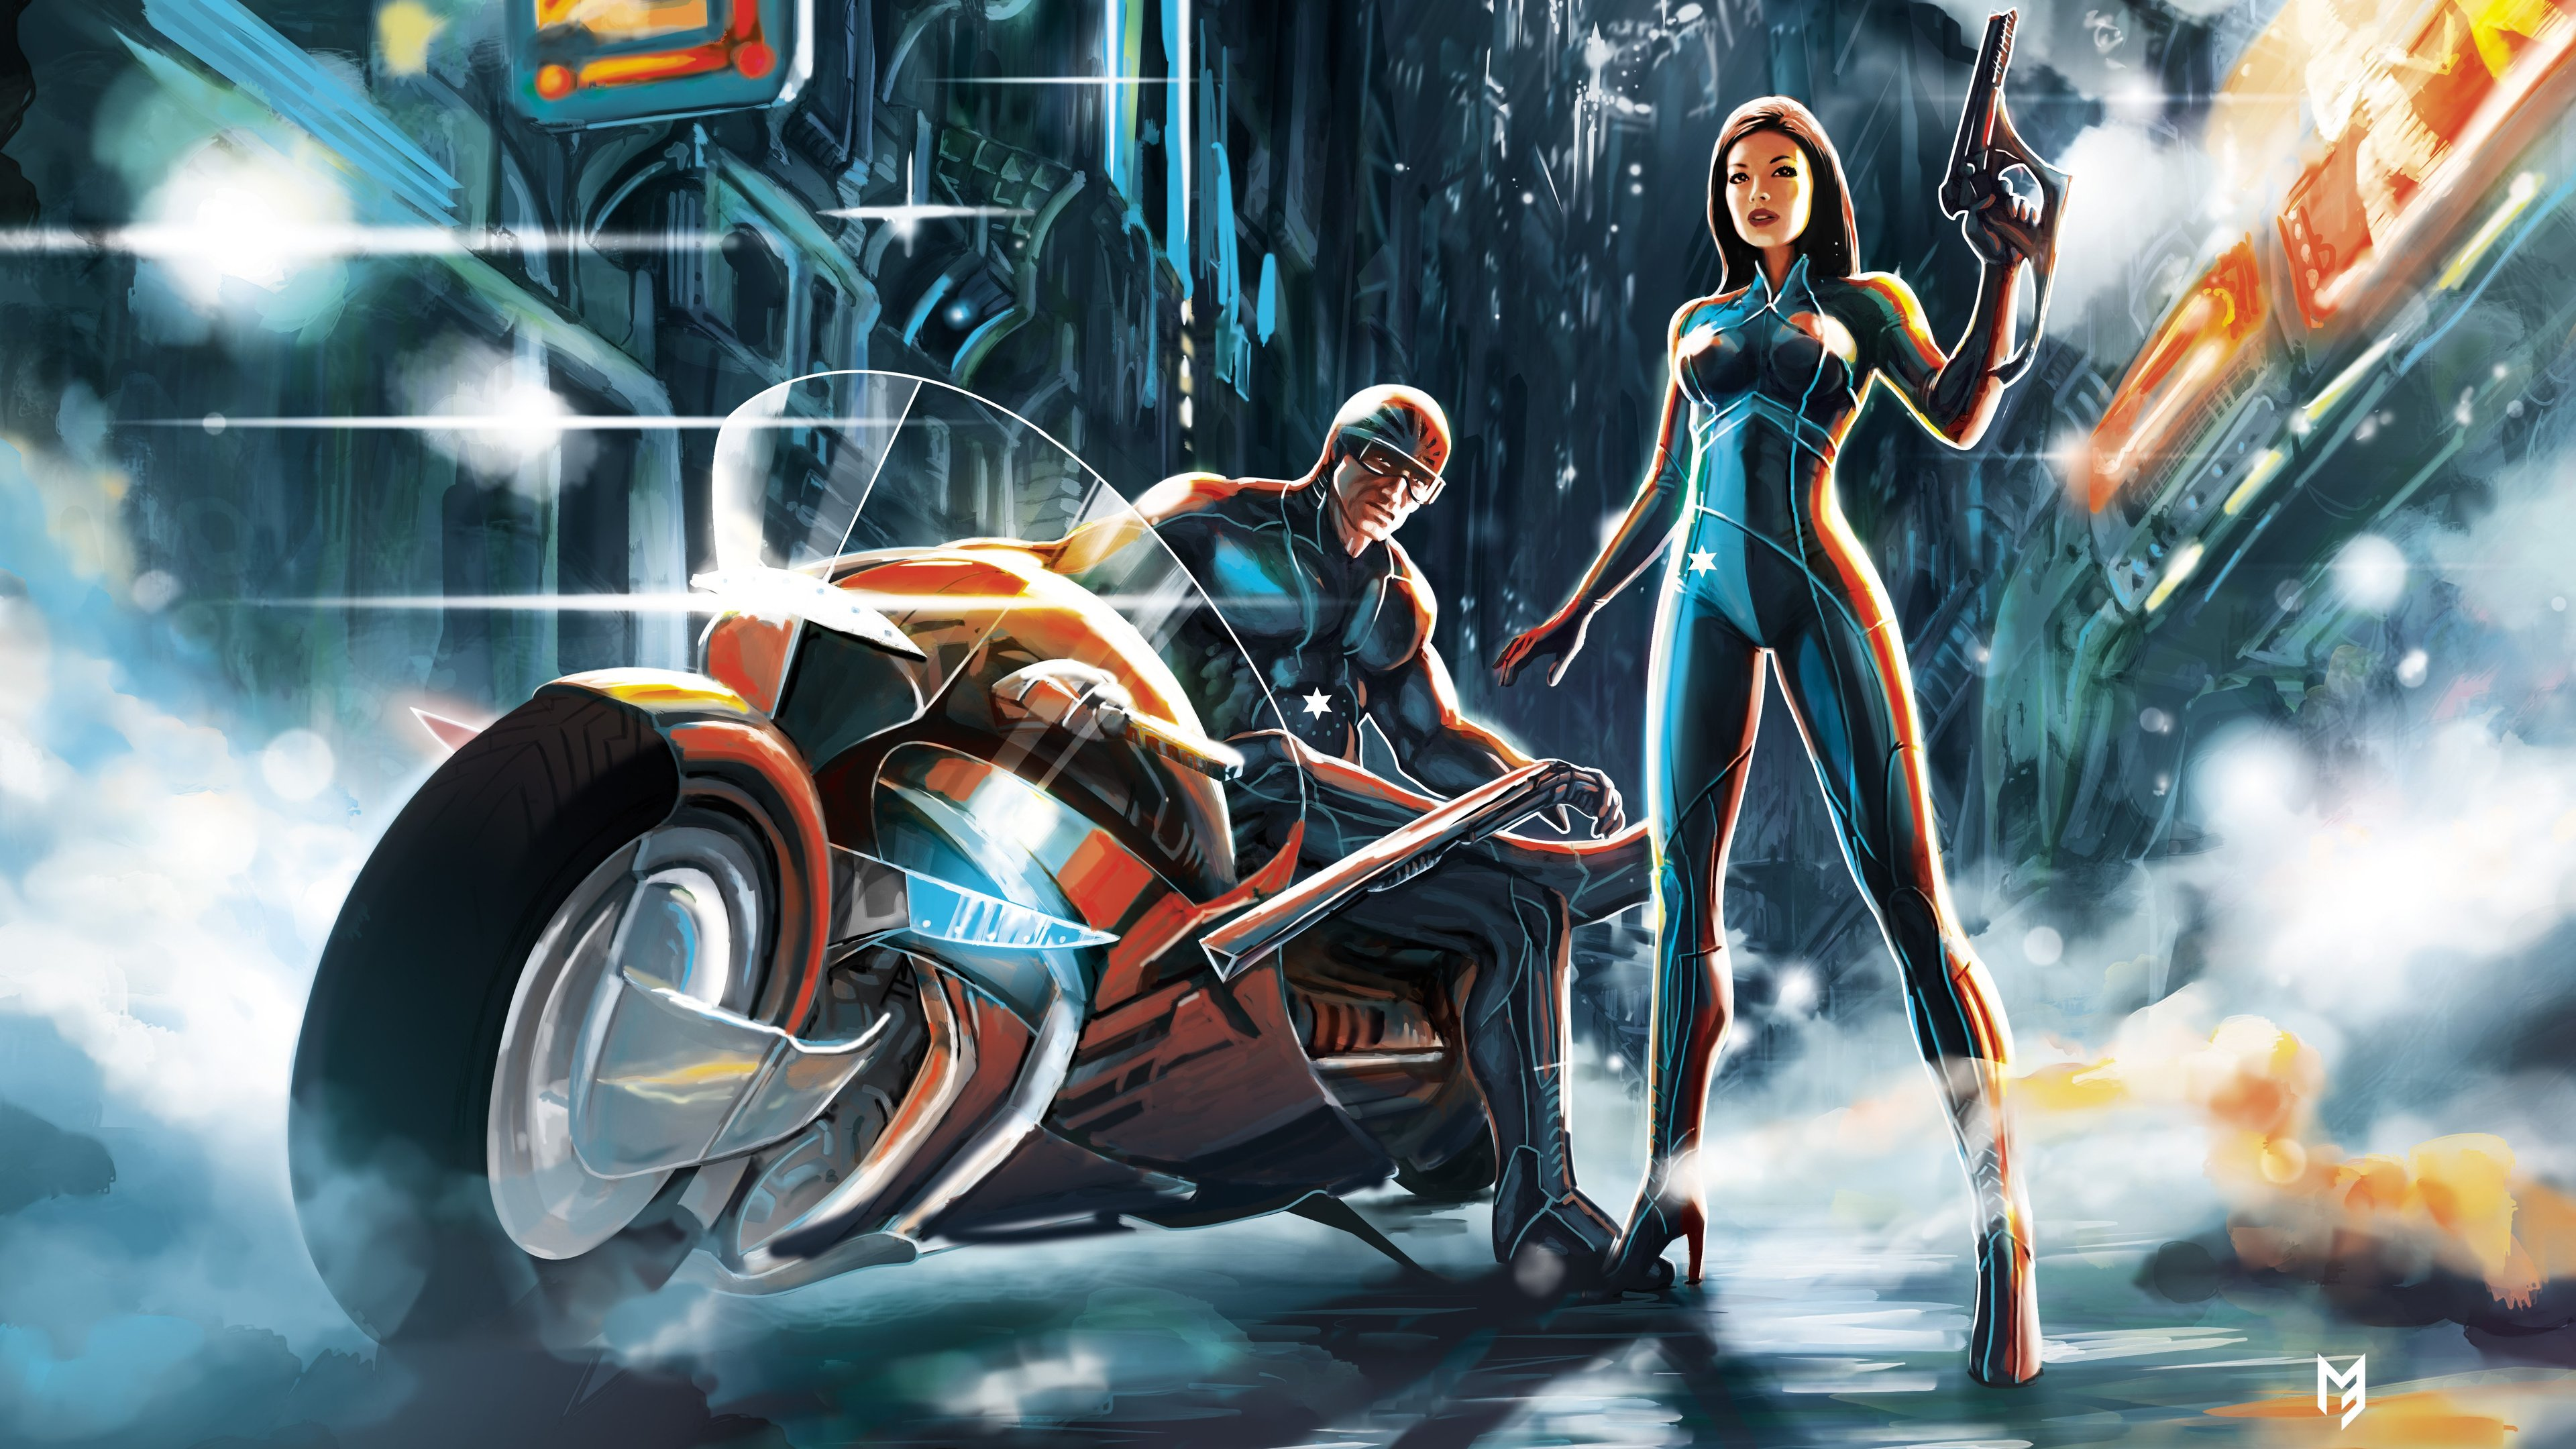 scifi futuristic warrior girl and boy with bike 1540755138 - Scifi Futuristic Warrior Girl And Boy With Bike - scifi wallpapers, hd-wallpapers, digital art wallpapers, artwork wallpapers, 4k-wallpapers